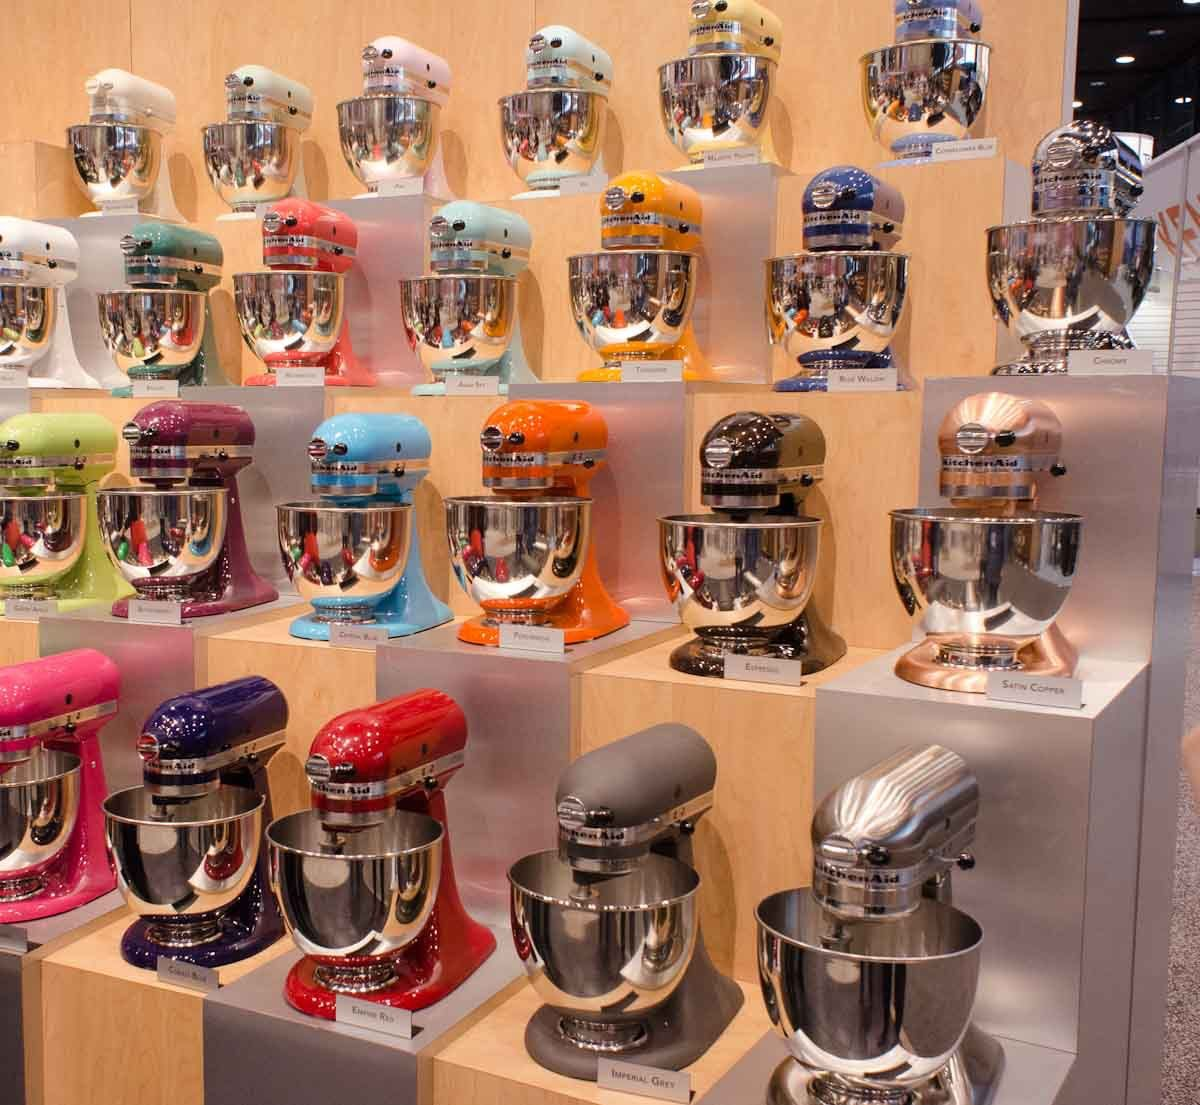 Kitchenaid announced their color of the year and its